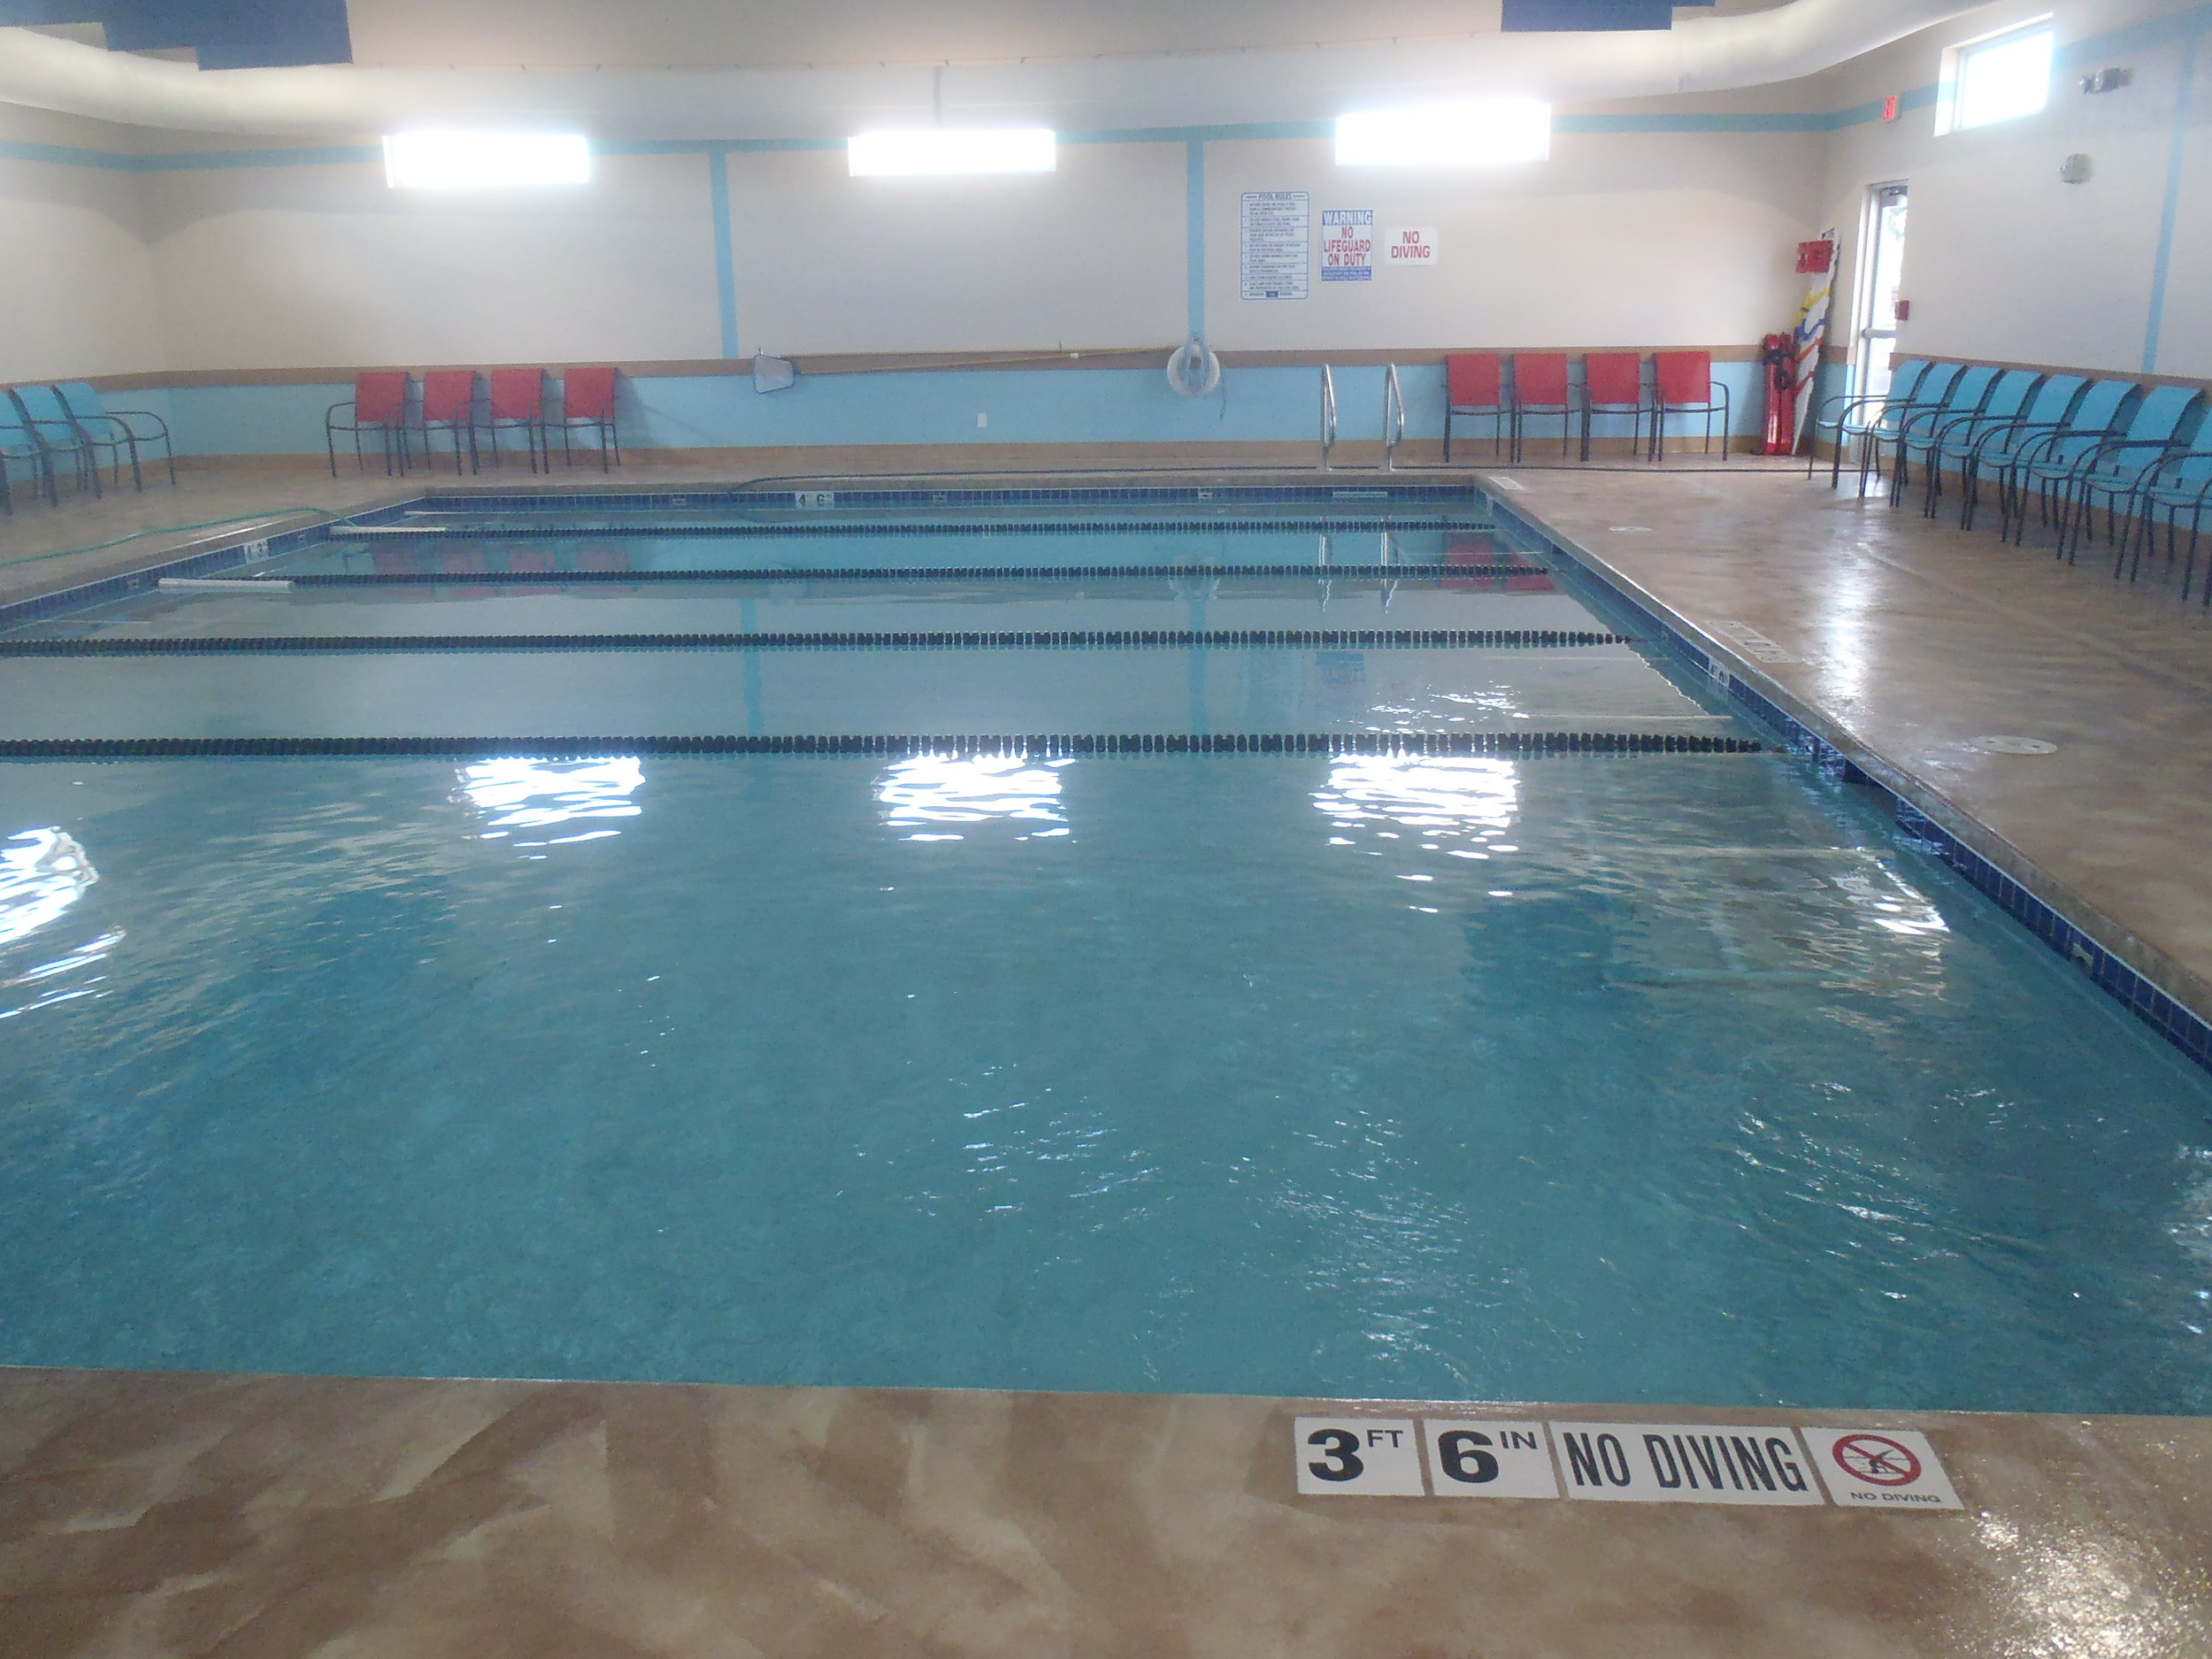 Indoor pool at Little Strokes Swim Academy in Waunakee, WI